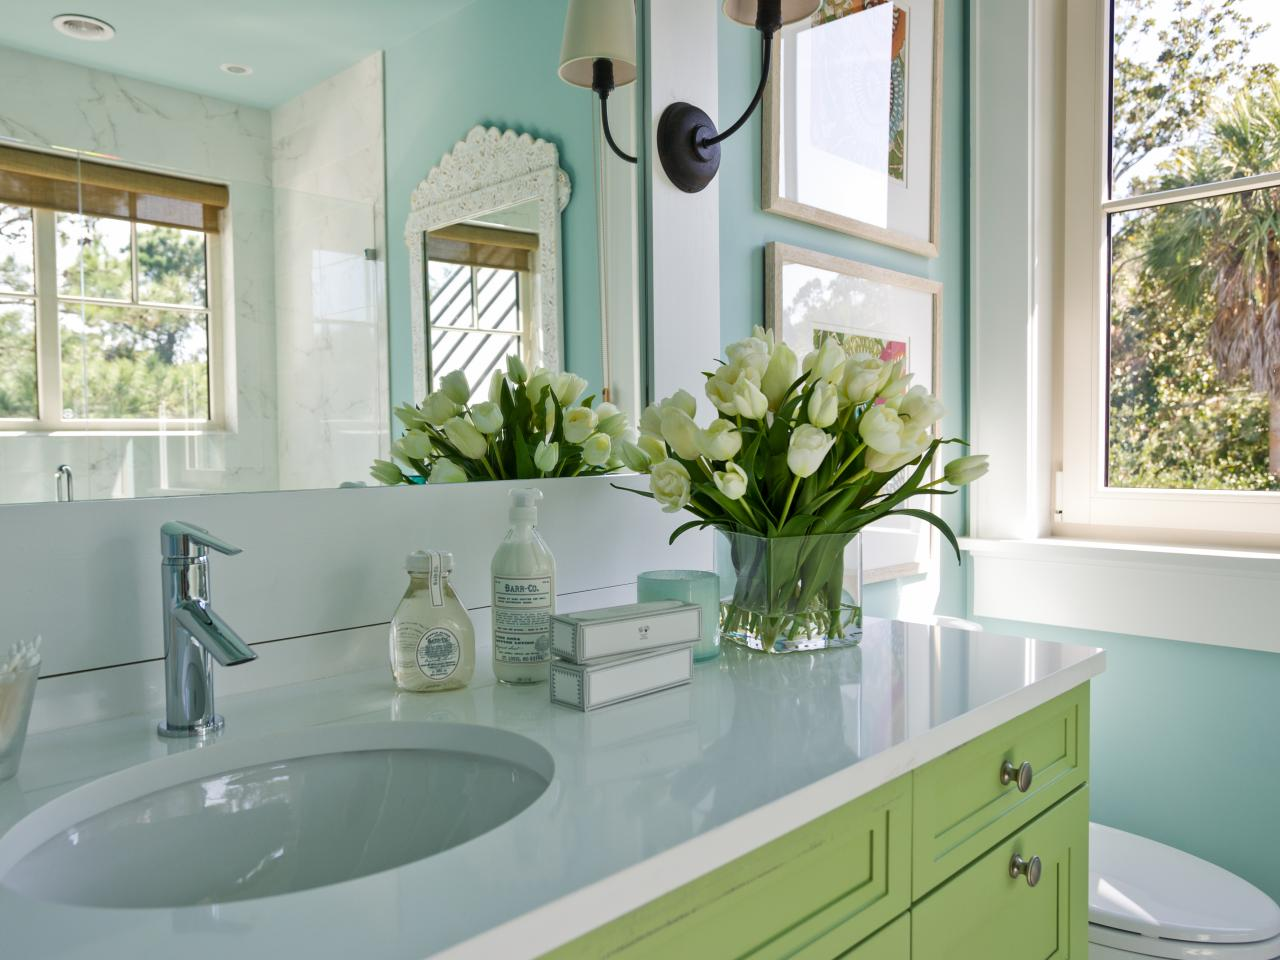 4 Tips For Redecorating Your Bathroom - The Fashionable ...